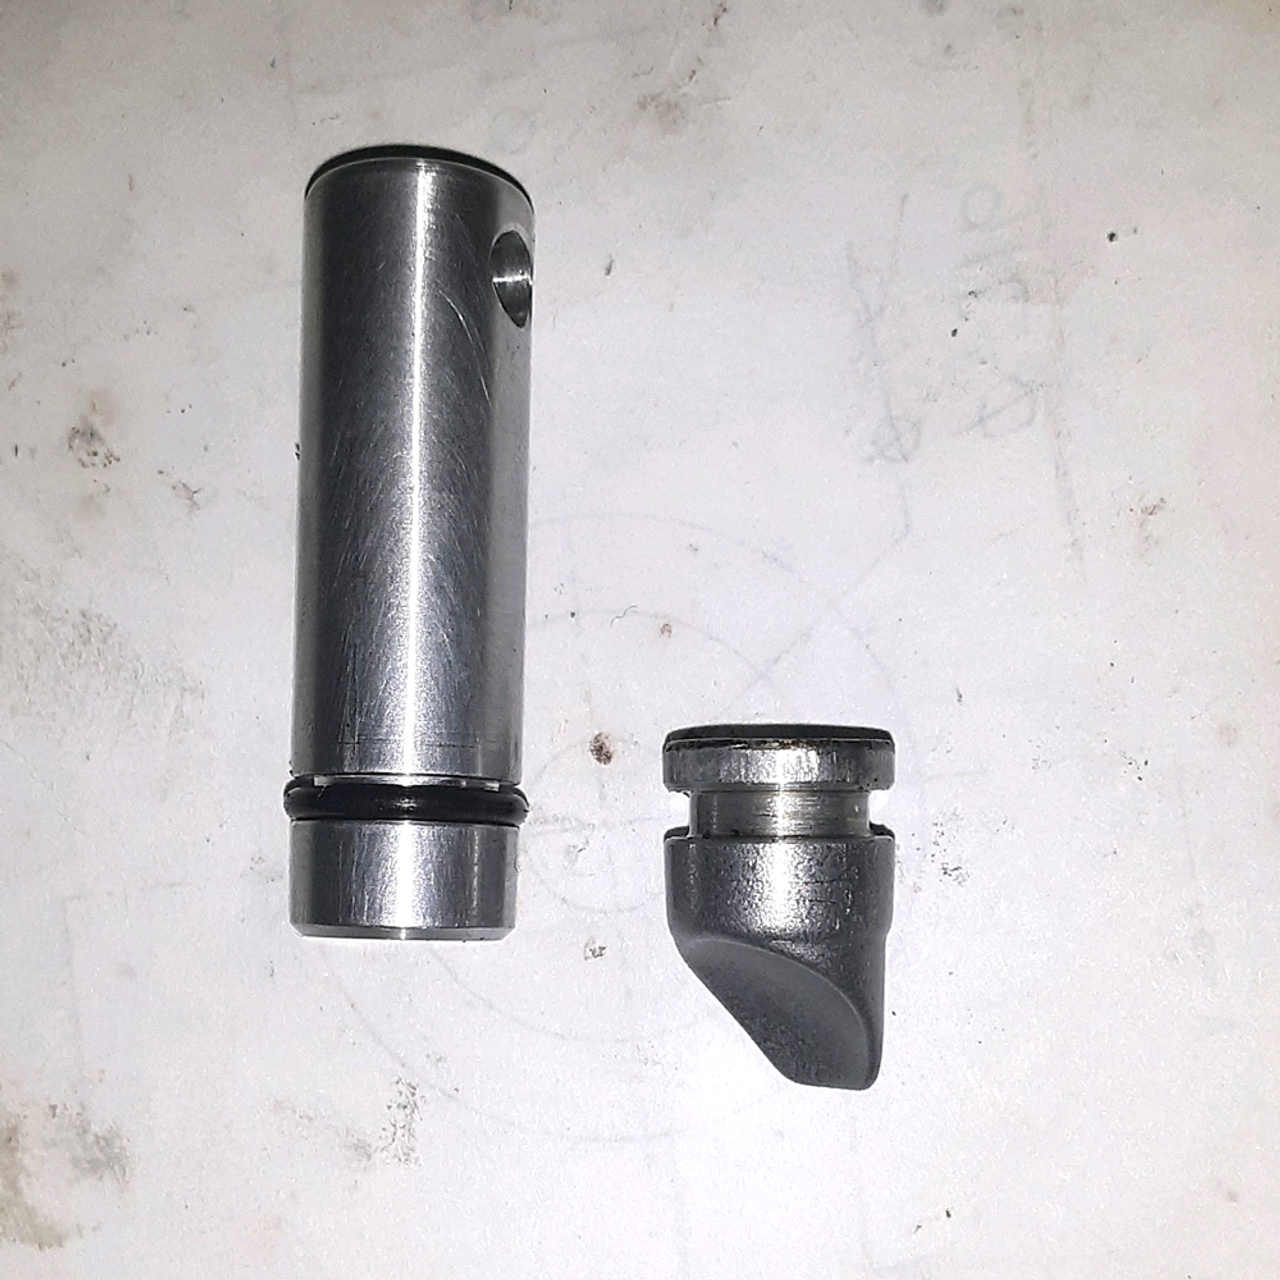 "80 Series 1FZ ""Emergency"" Power Steering Plug (PSP-1), old vs new plug"